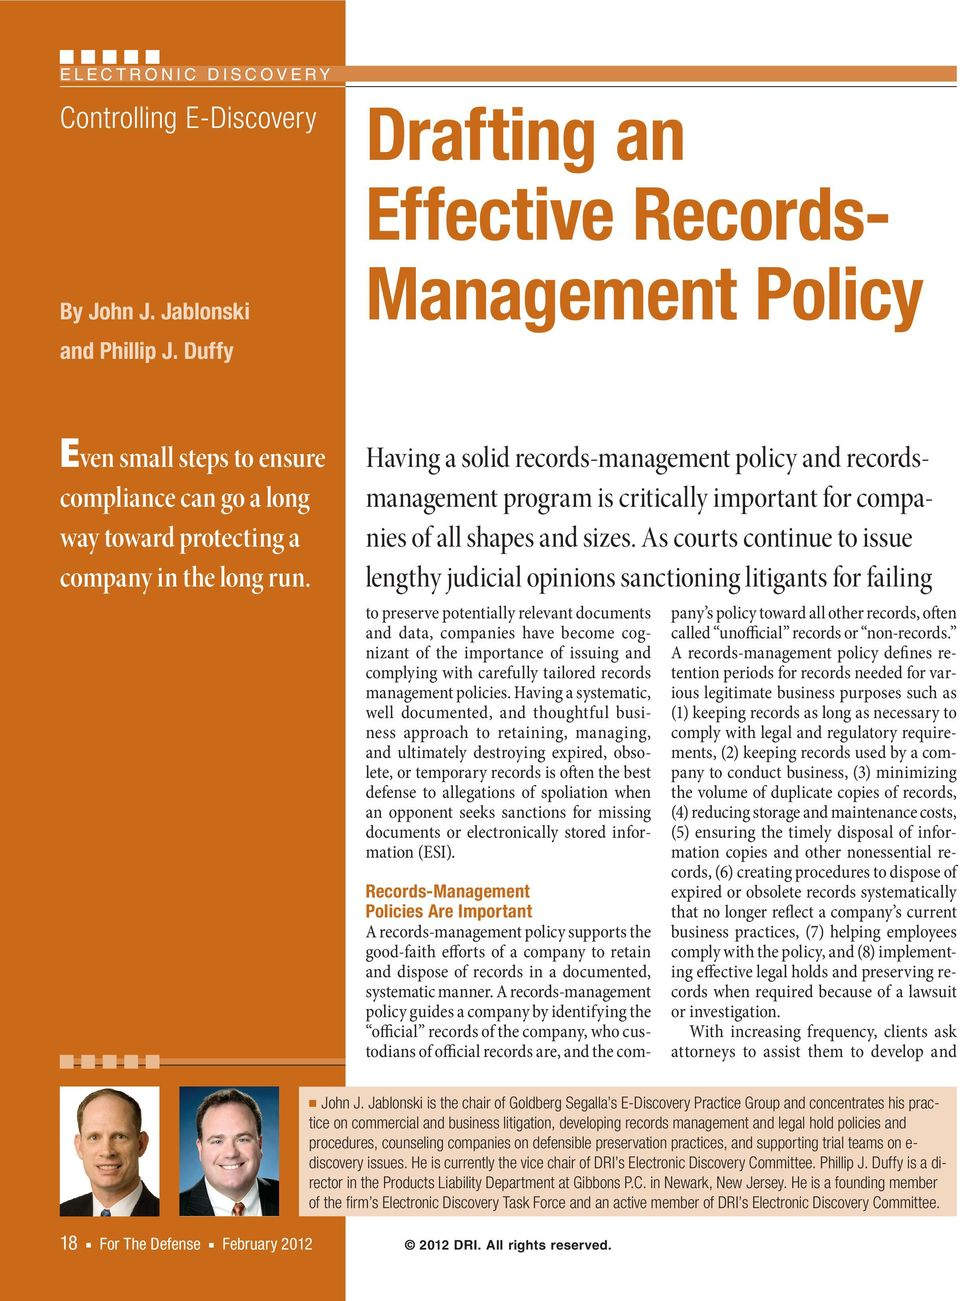 Having a solid records- management policy and recordsmanagement program is critically important for companies of all shapes and sizes.